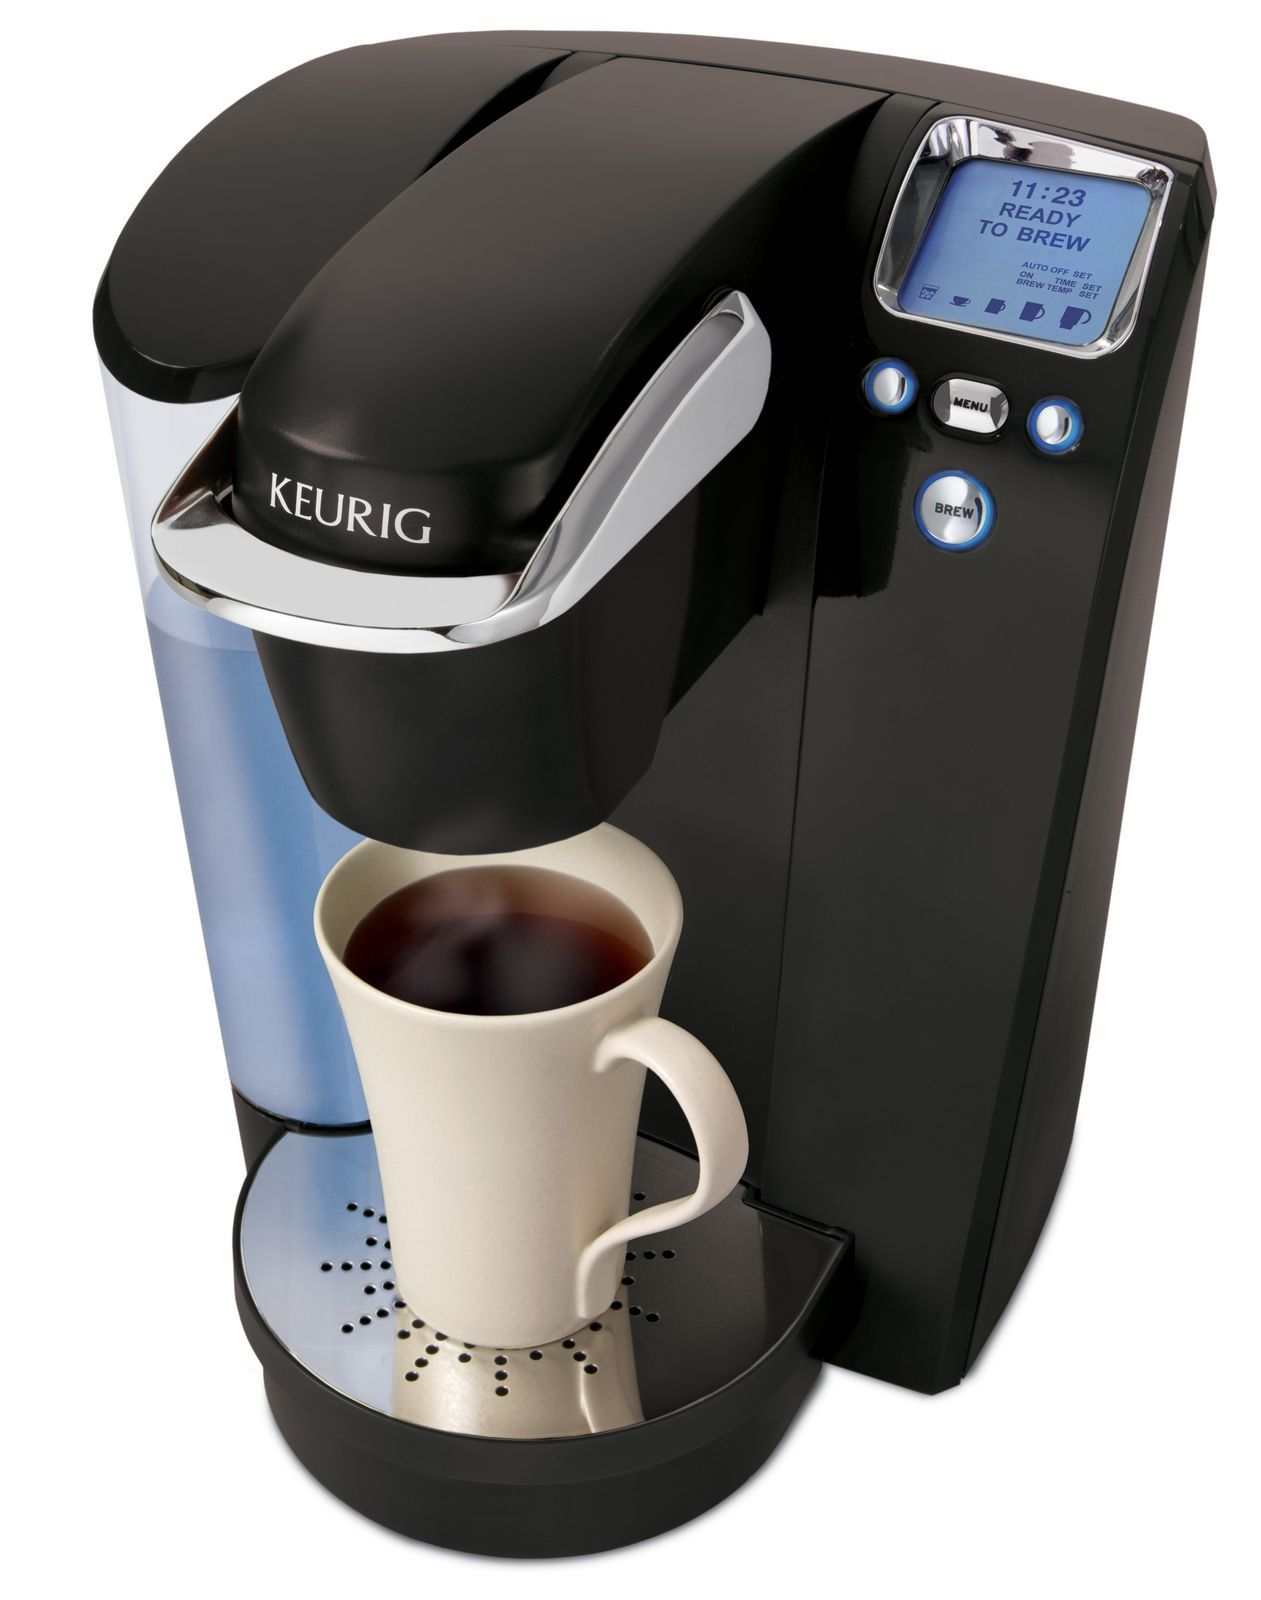 Pin by Kirk Martin on Products I Love Keurig, Coffee